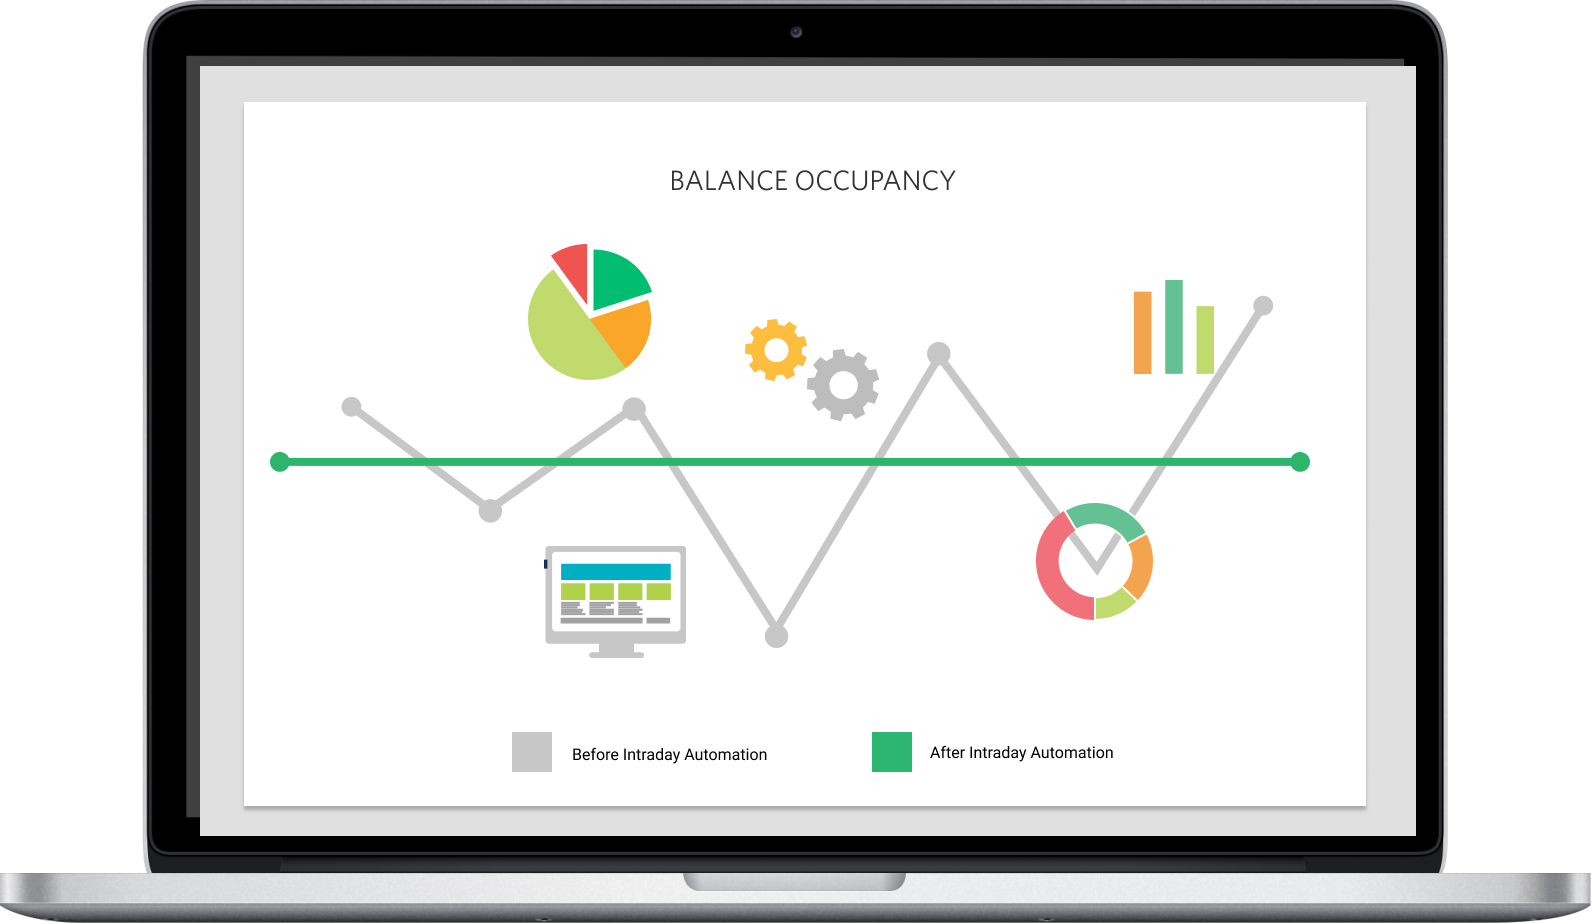 Balance occupancy graph before and after automation